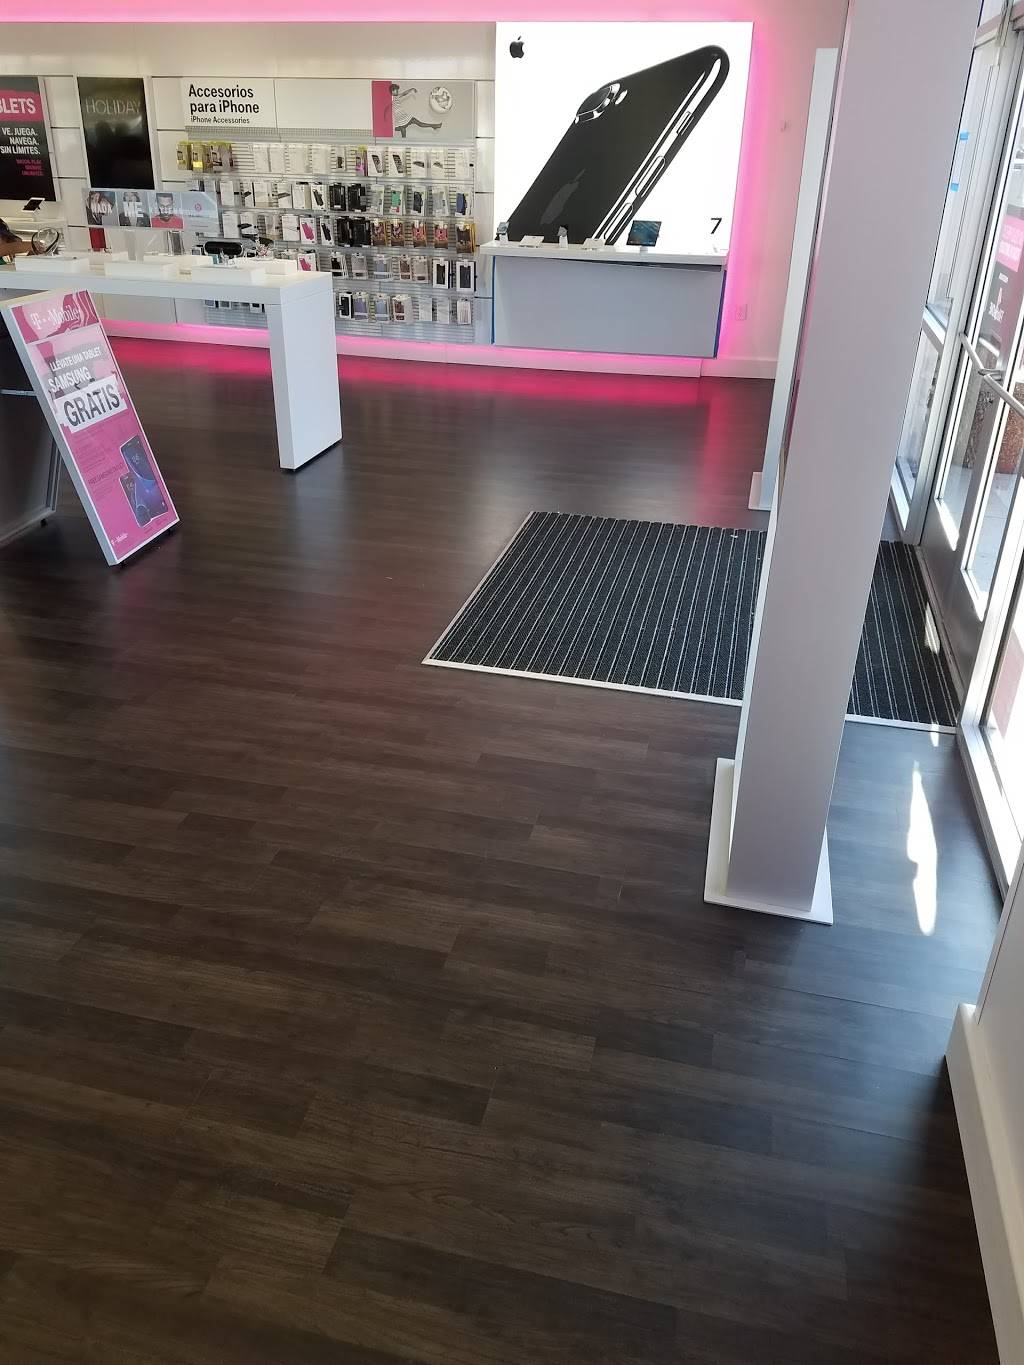 T-Mobile - electronics store  | Photo 10 of 10 | Address: 1110 E Parker Rd Suite C, Plano, TX 75074, USA | Phone: (972) 423-4825